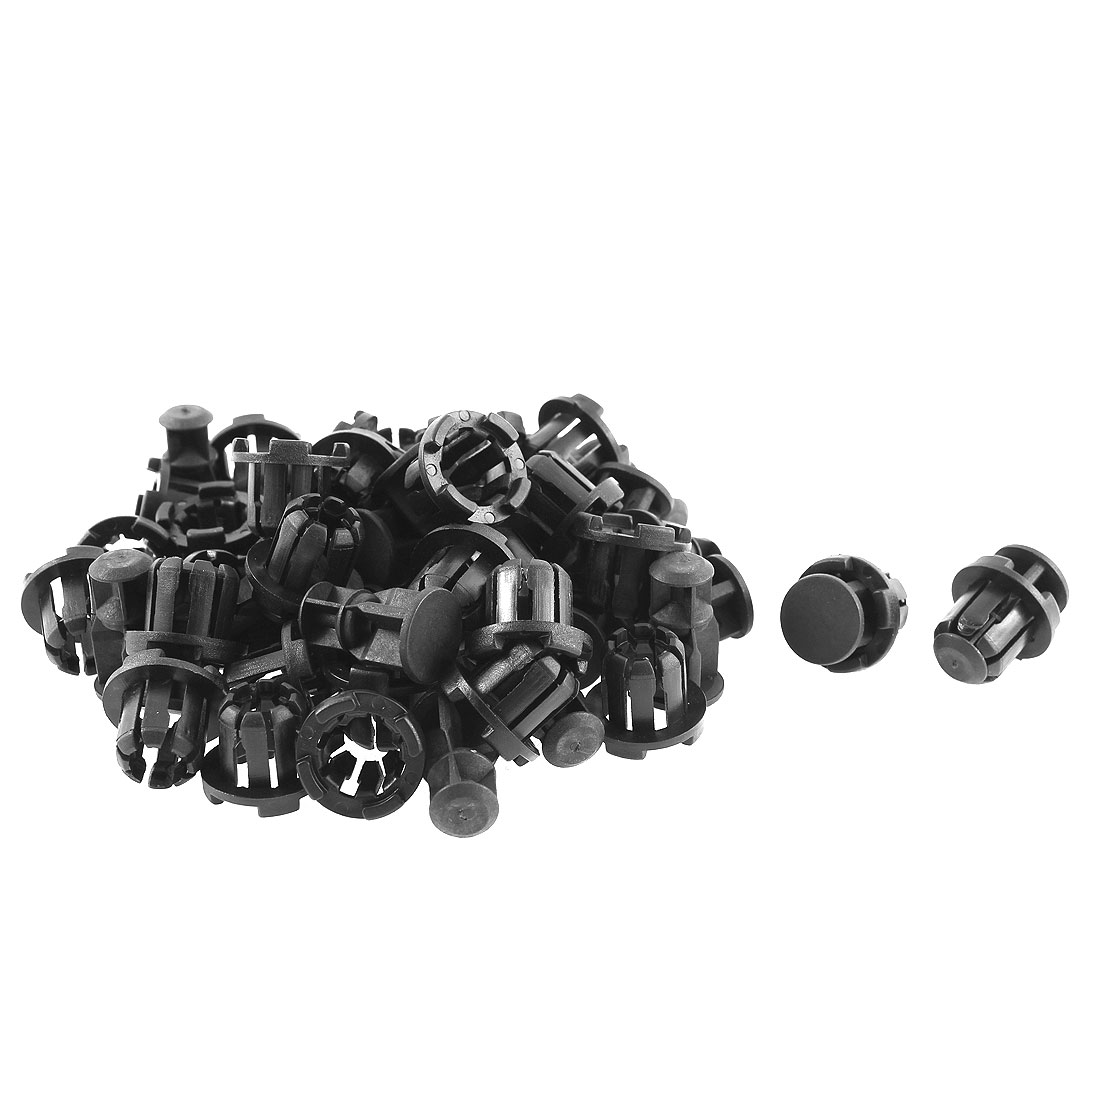 30 Pcs 21mm x 15mm Black Plastic Rivet Bumper Lining Trim Panel Retainer Fastener Clips